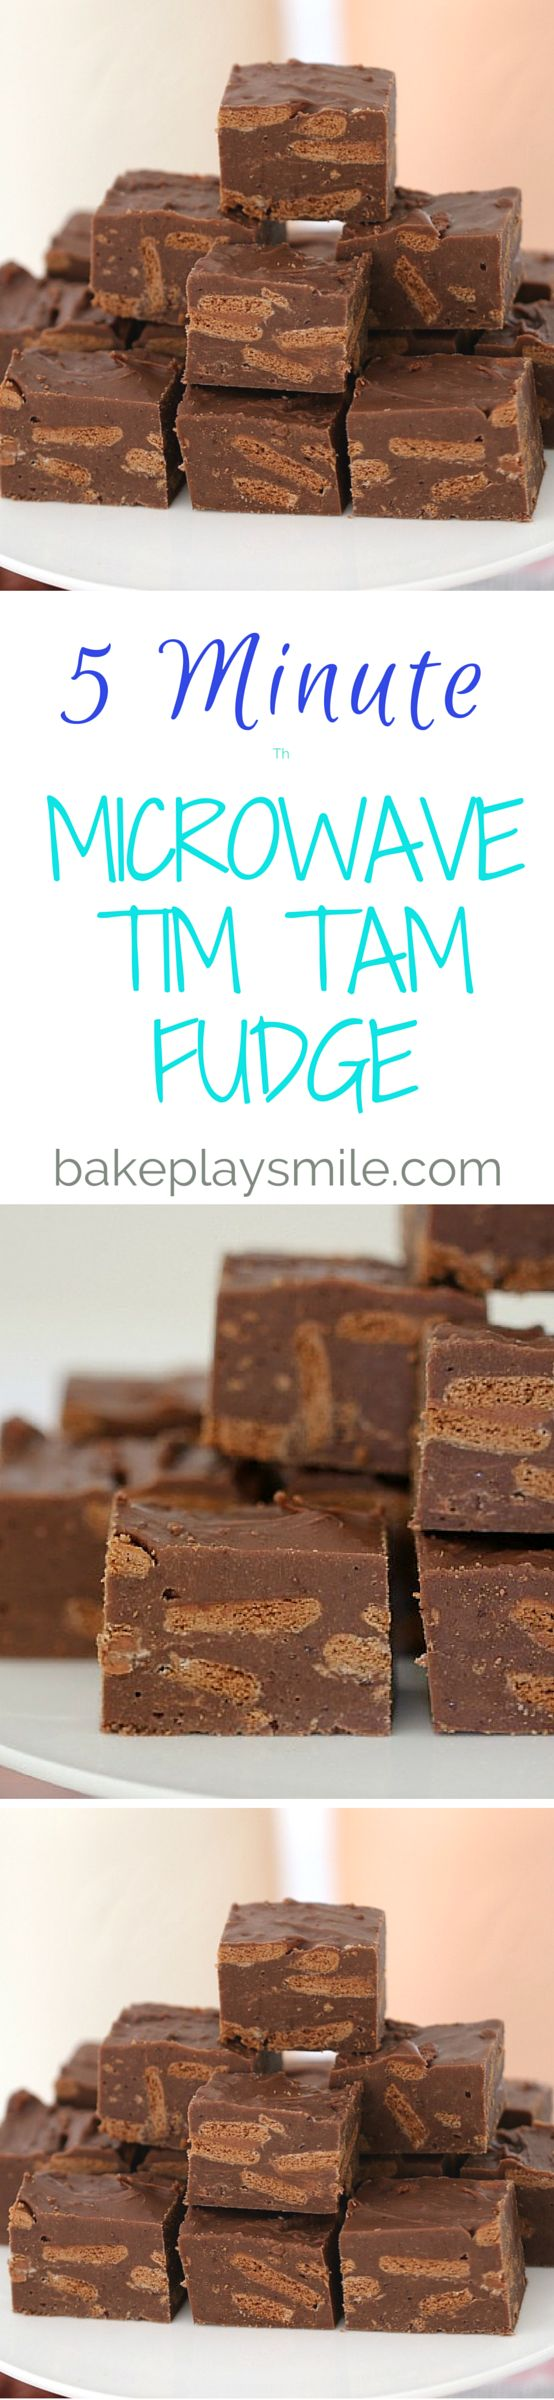 This 5 Minute Microwave Tim Tam Fudge is the quickest and easiest fudge you'll ever make!                                                                                                                                                      More